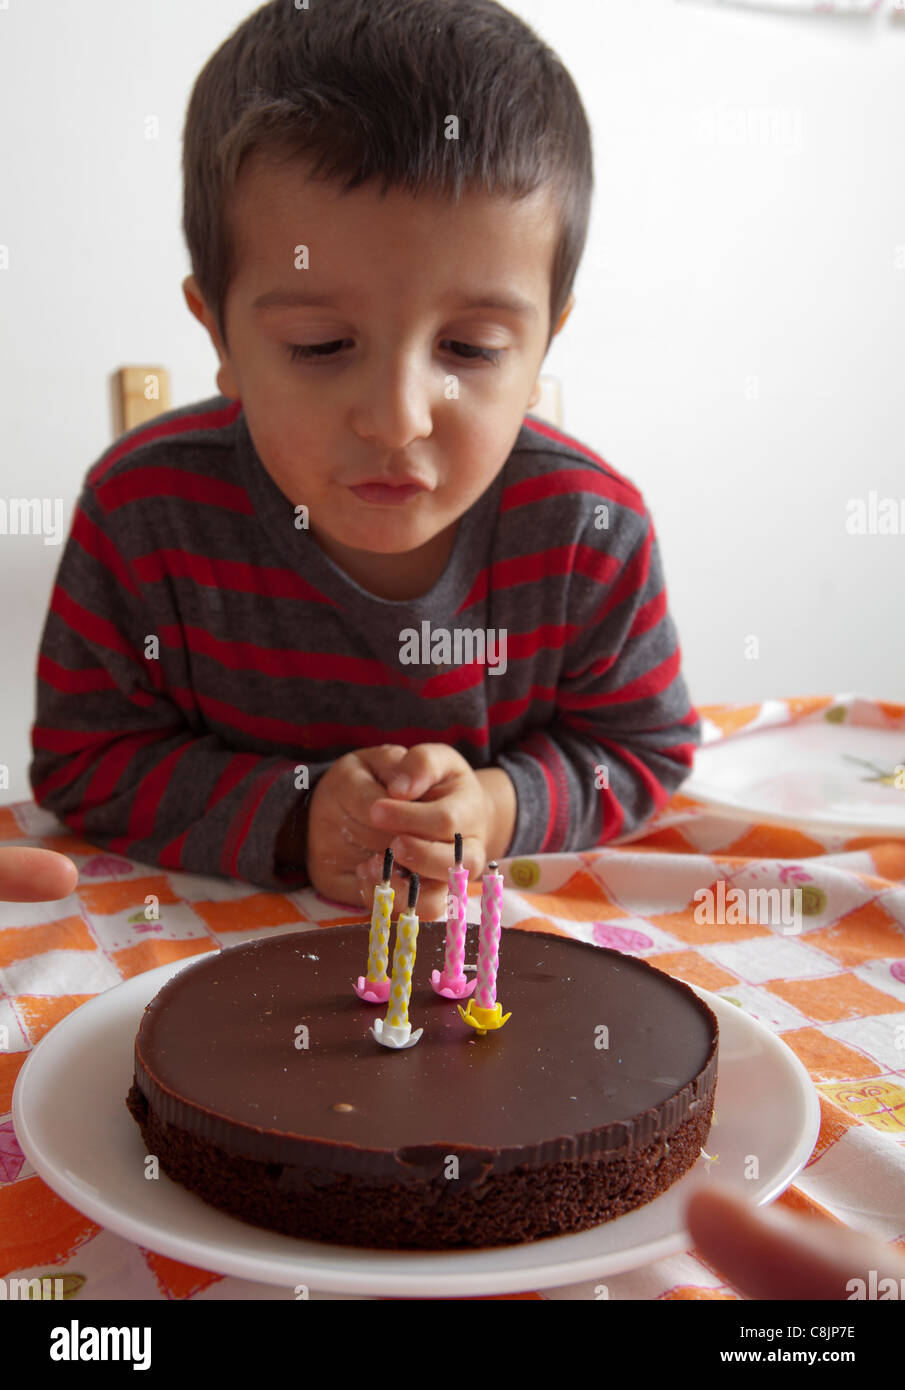 3 Years Old Boy Looking At His Birthday Cake Stock Photo Alamy